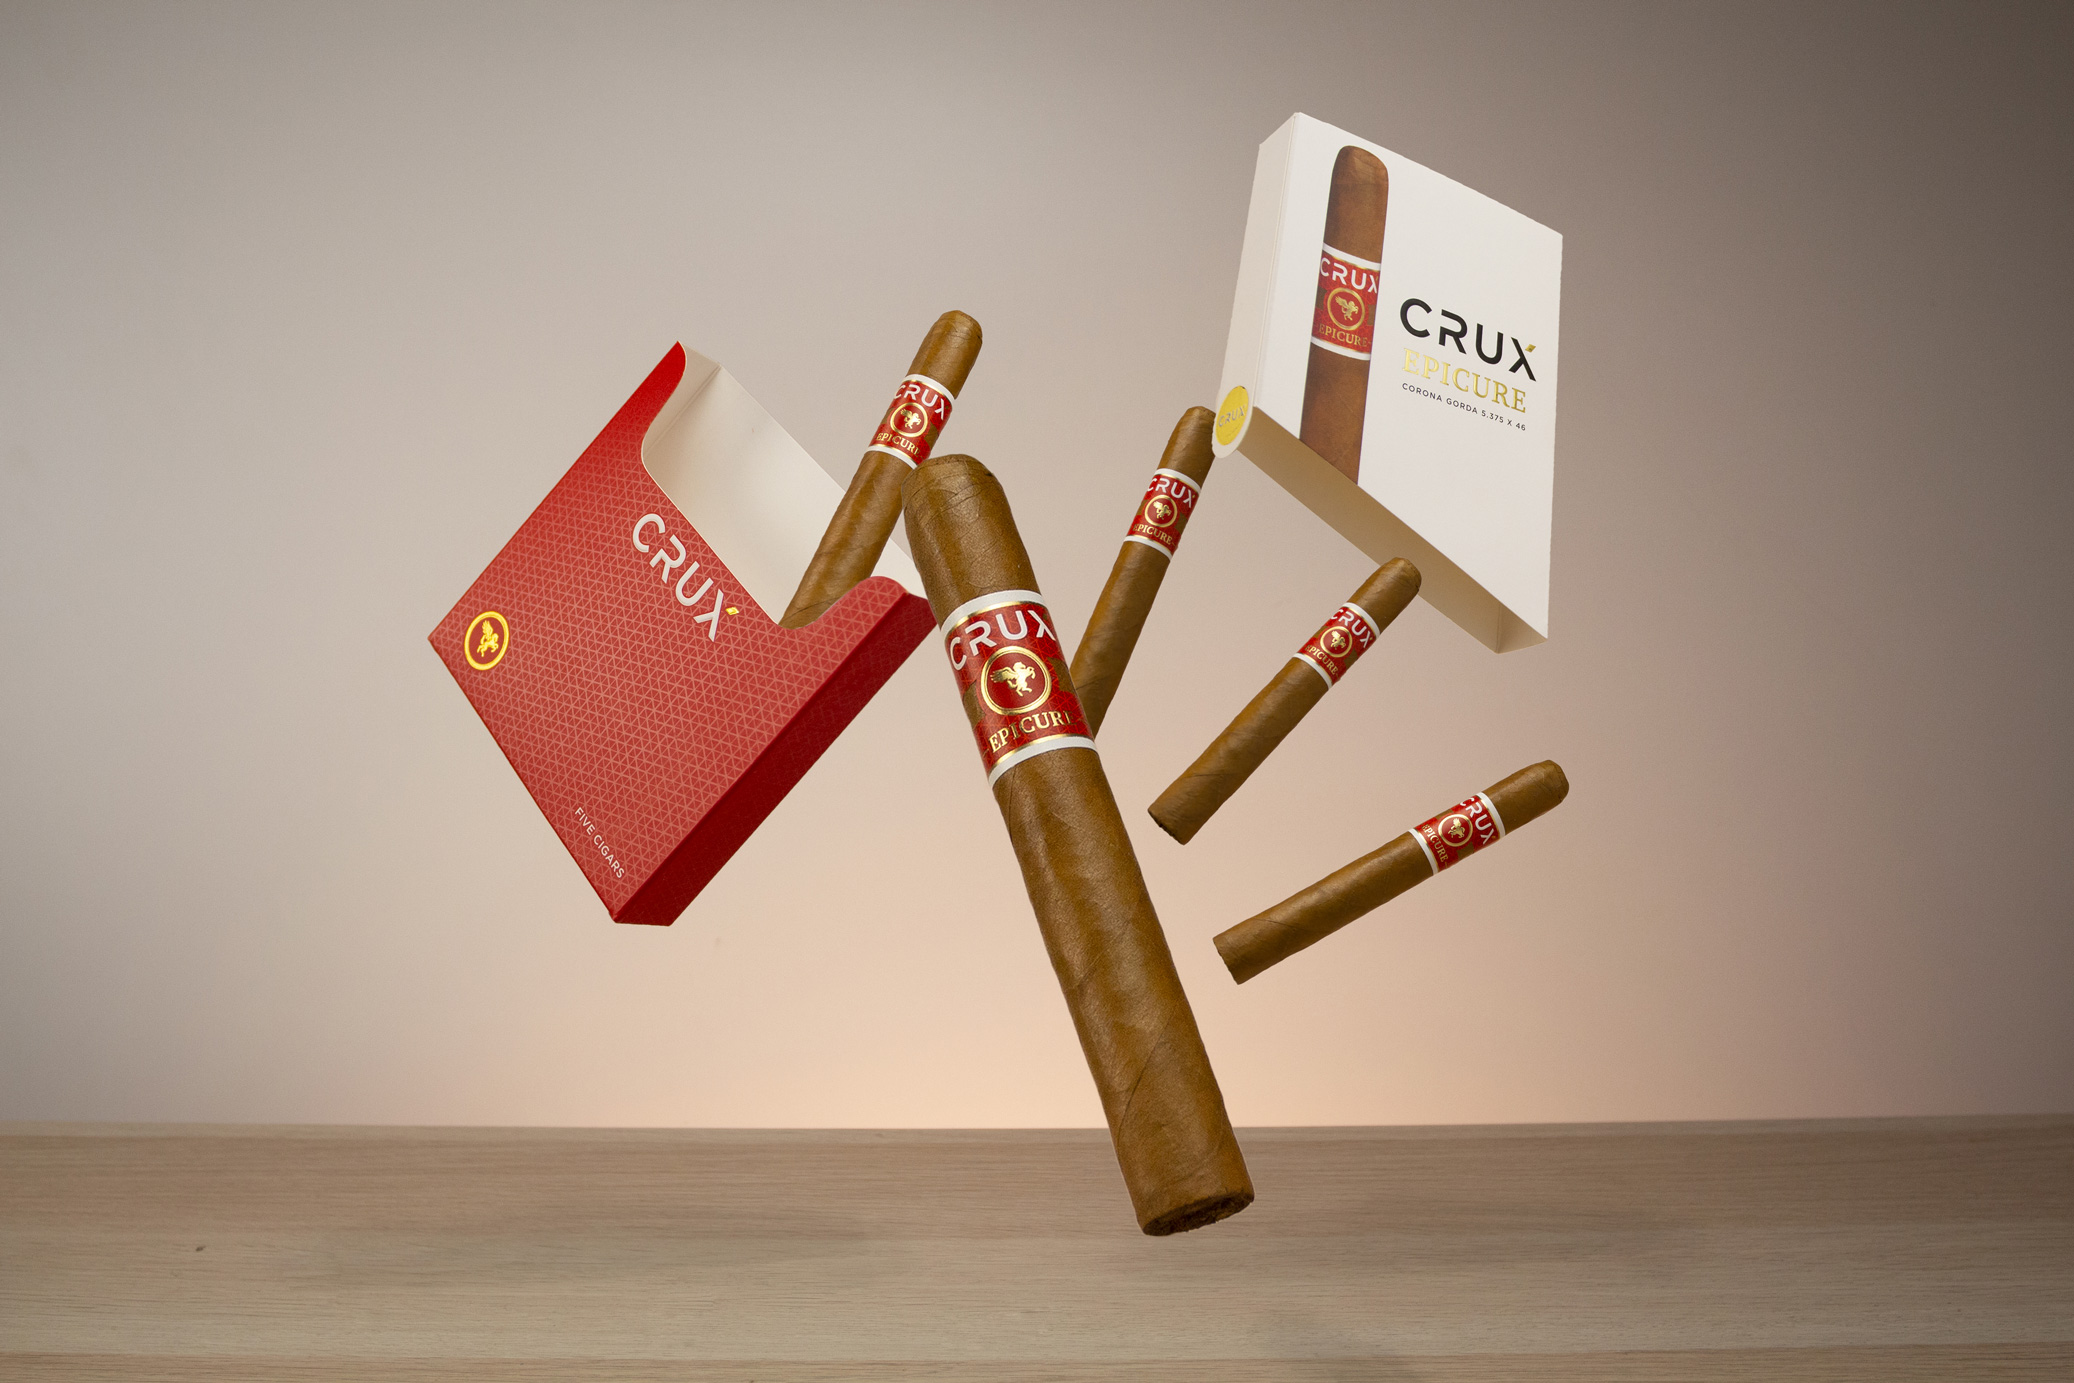 red box and white box of crux cigar packs falling